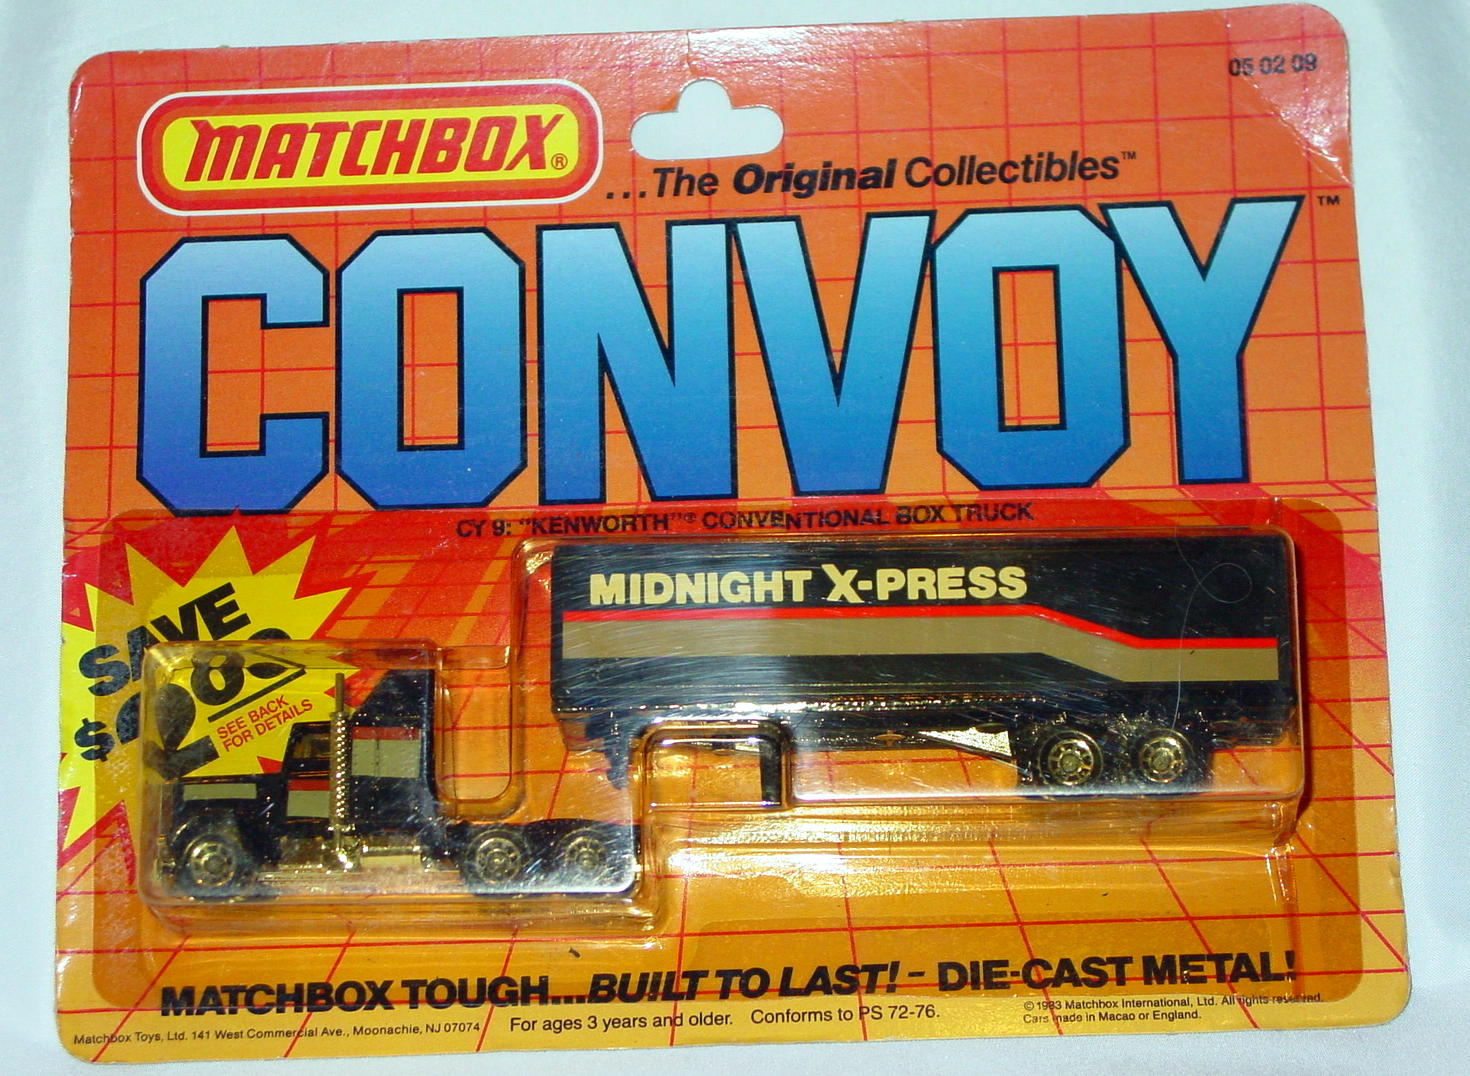 Convoy 09 A 1 - Kenworth Box truck Black 41D Cab clear window MIDNIGHT EXP